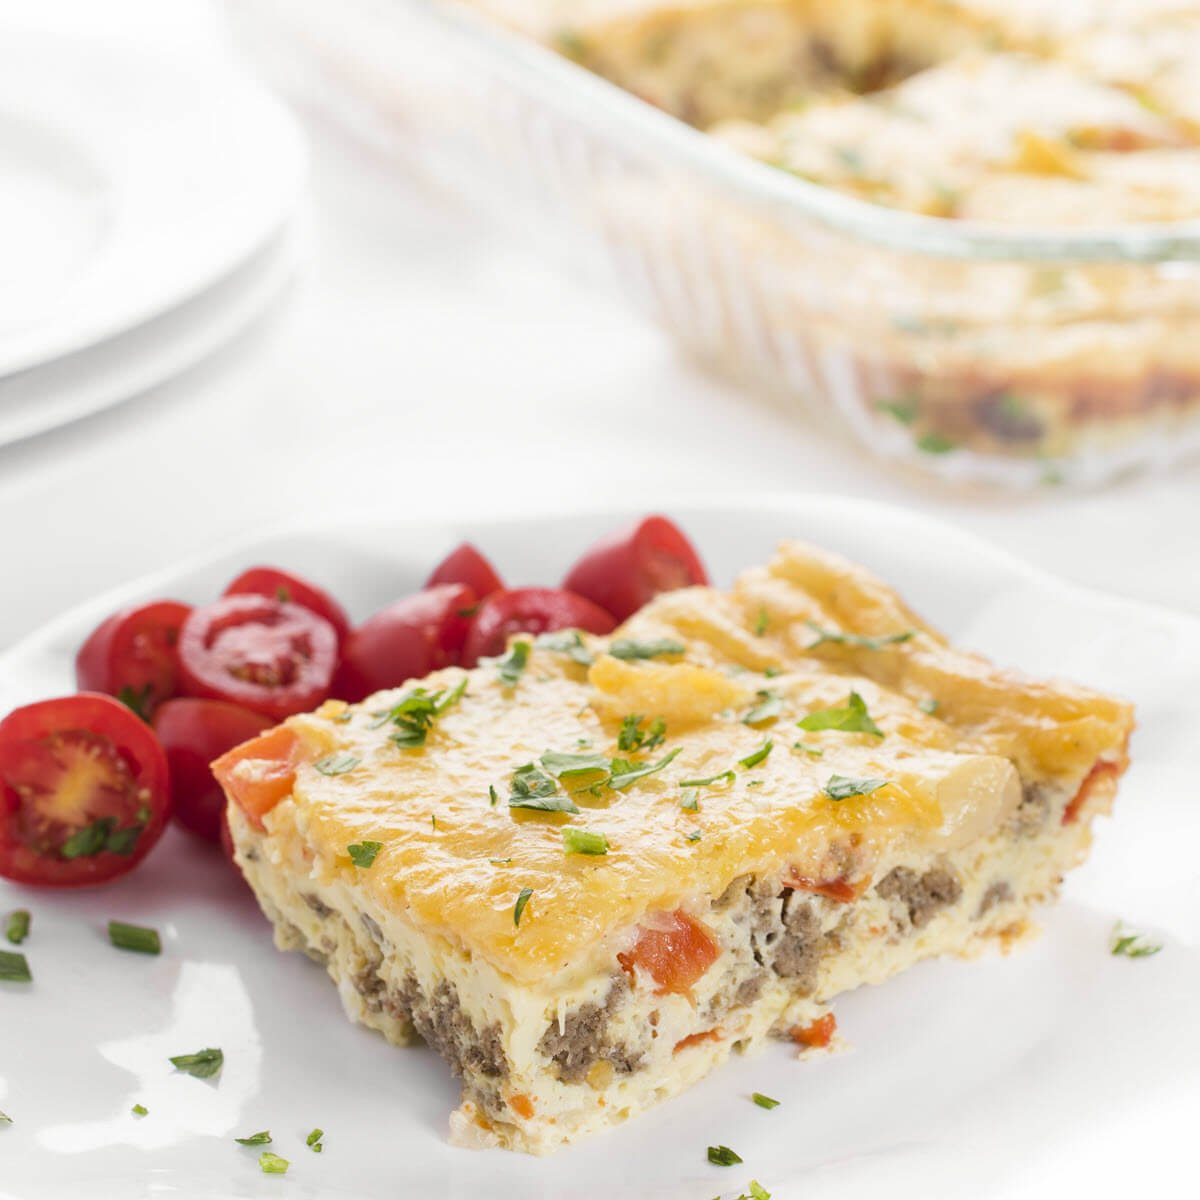 Easy Sausage and Pepper Egg Bake with tomatoes on a plate